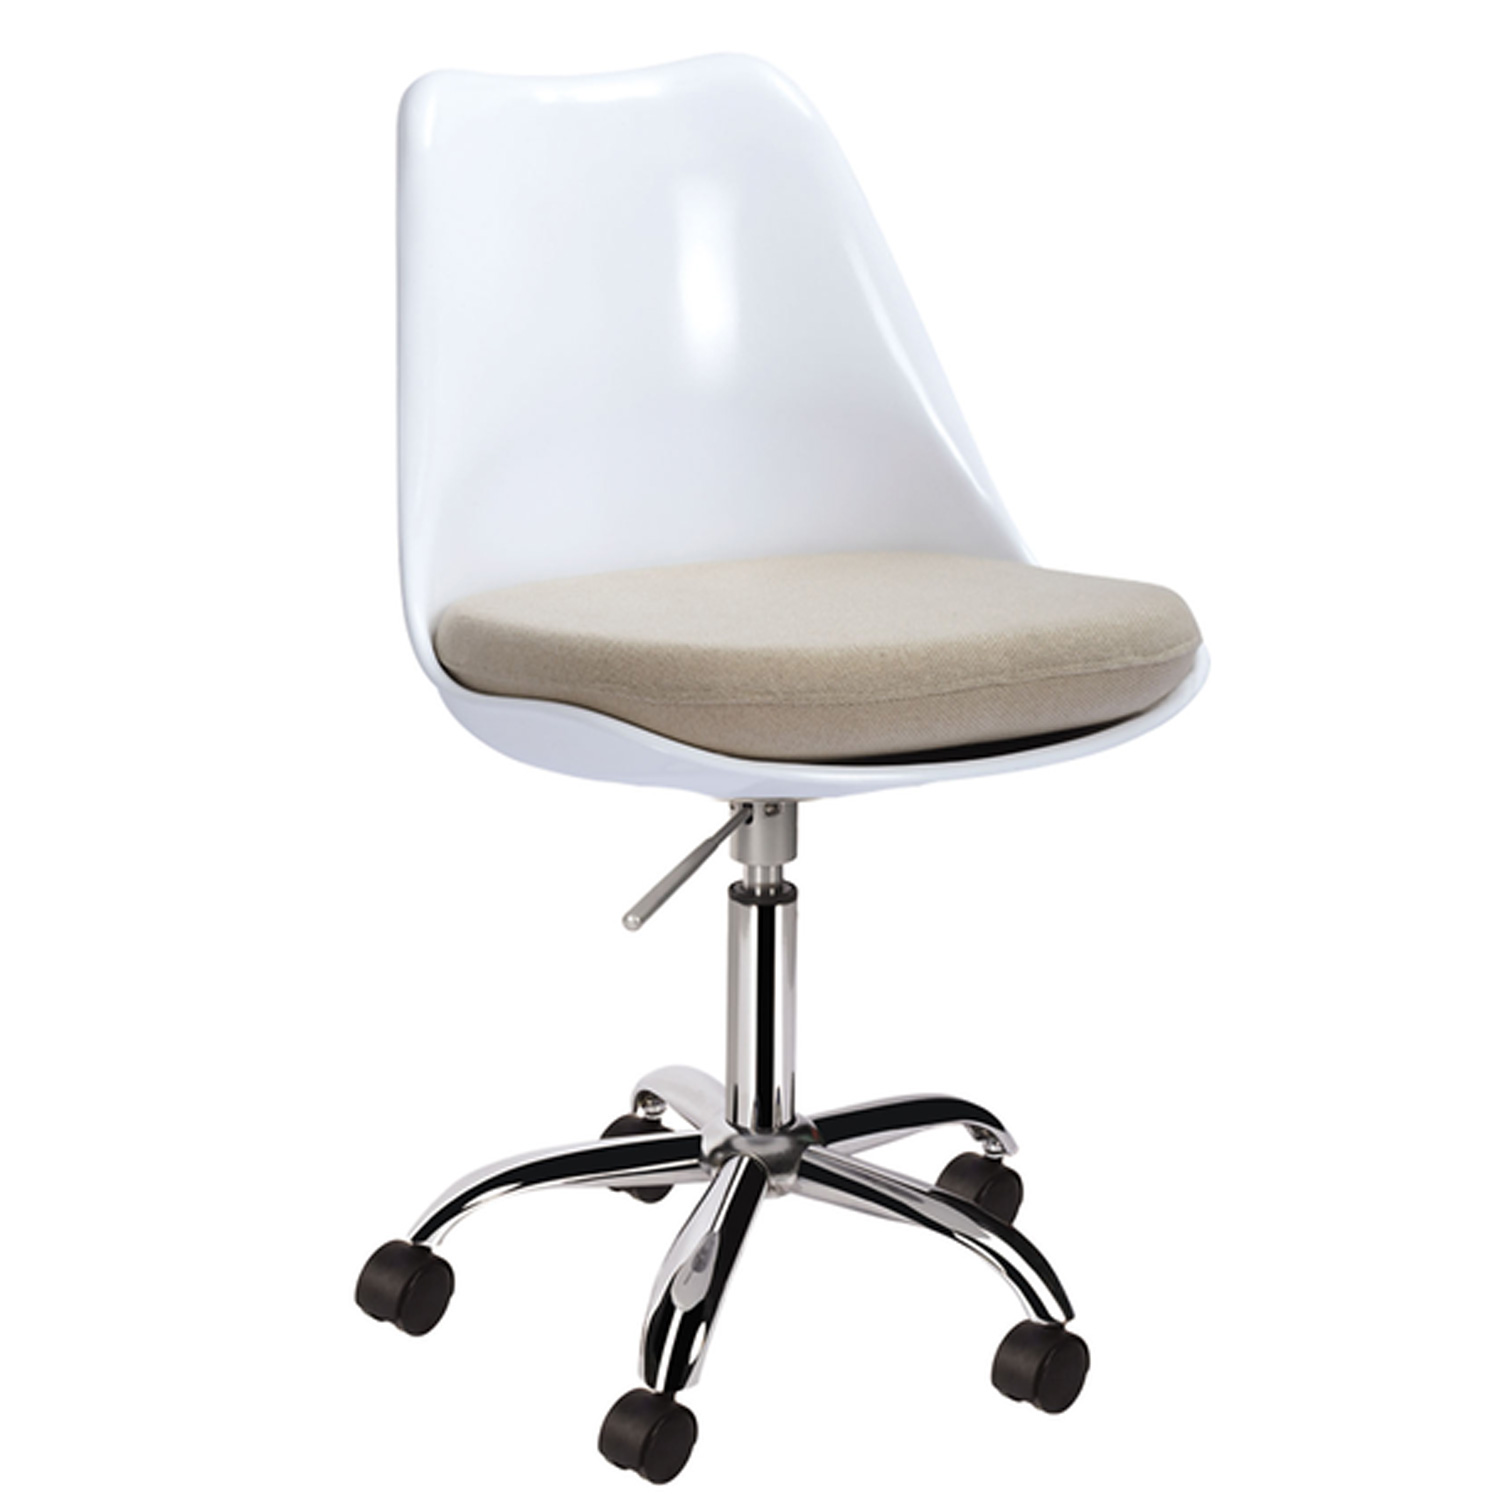 100 tulip chair replica eames executive chair replica eames office chair replica replica - Replica tulip chair ...